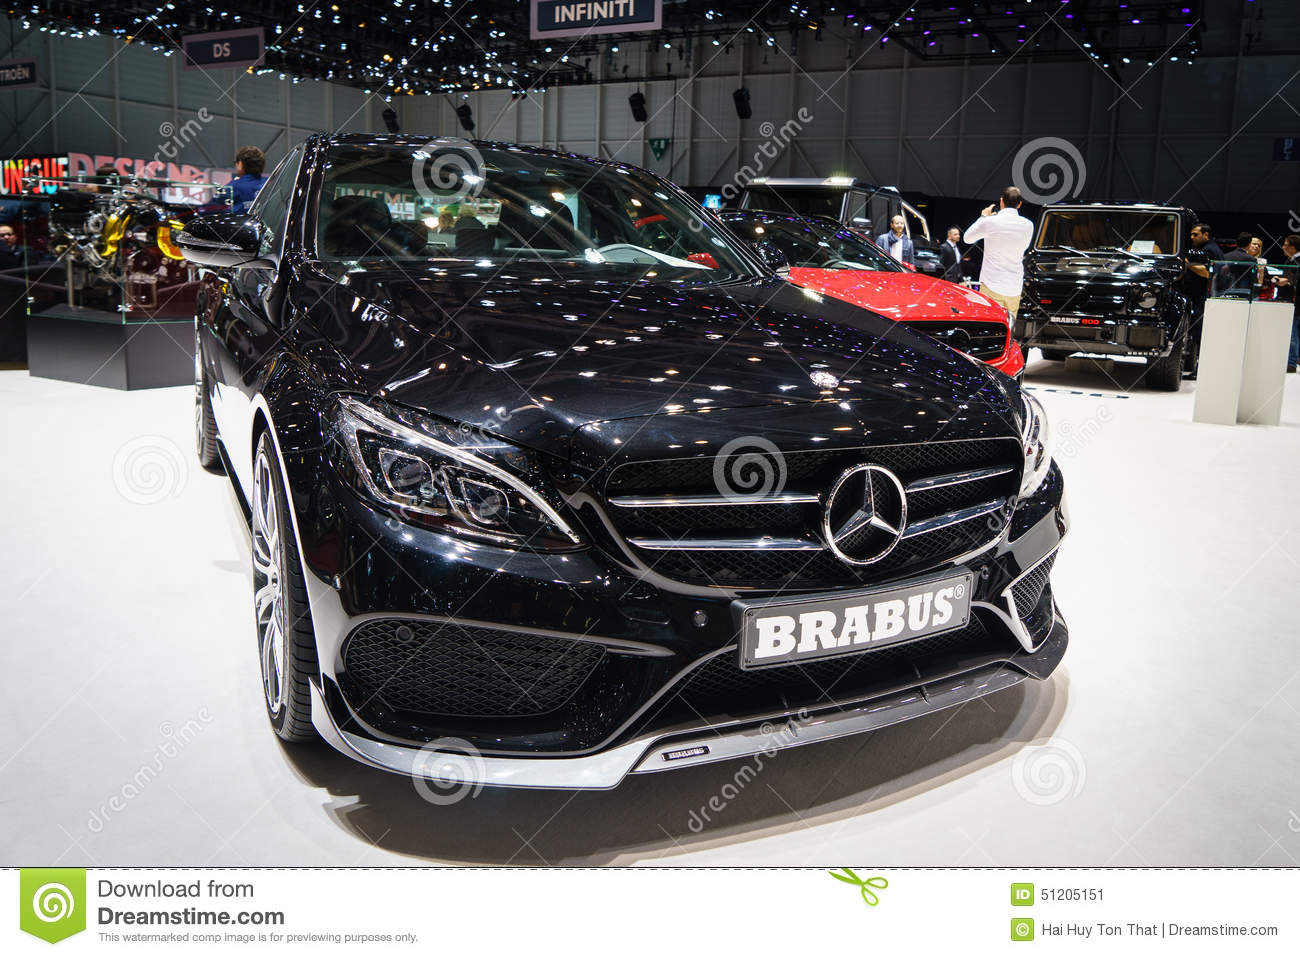 Brabus 850 s63 amg motor show geneve 2015 editorial for Mercedes benz s63 amg biturbo